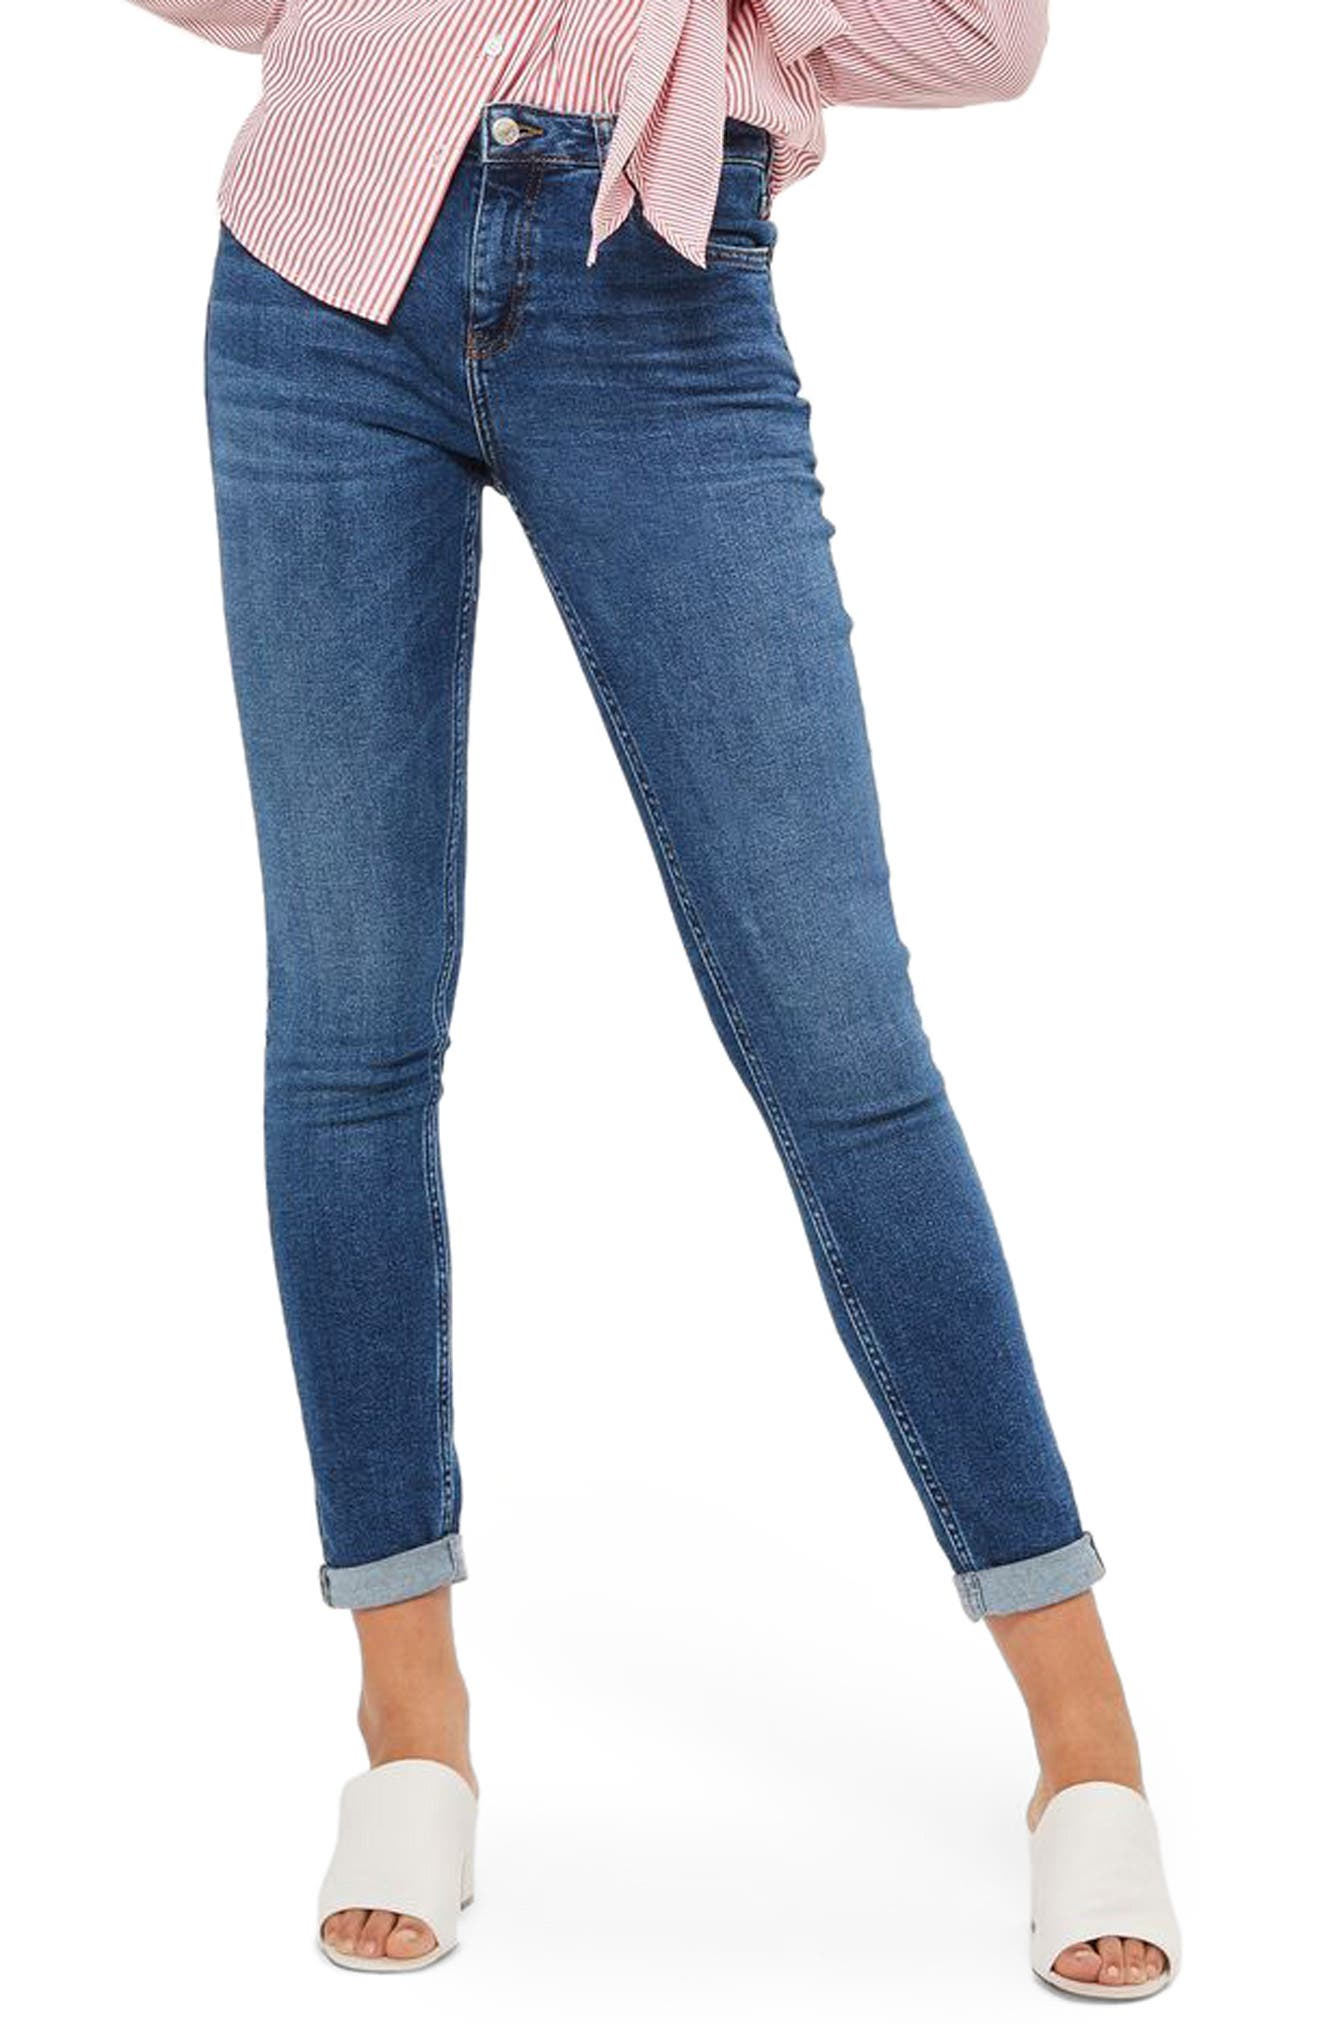 Main Image - Topshop Lucas Relaxed Fit Jeans (Tall)